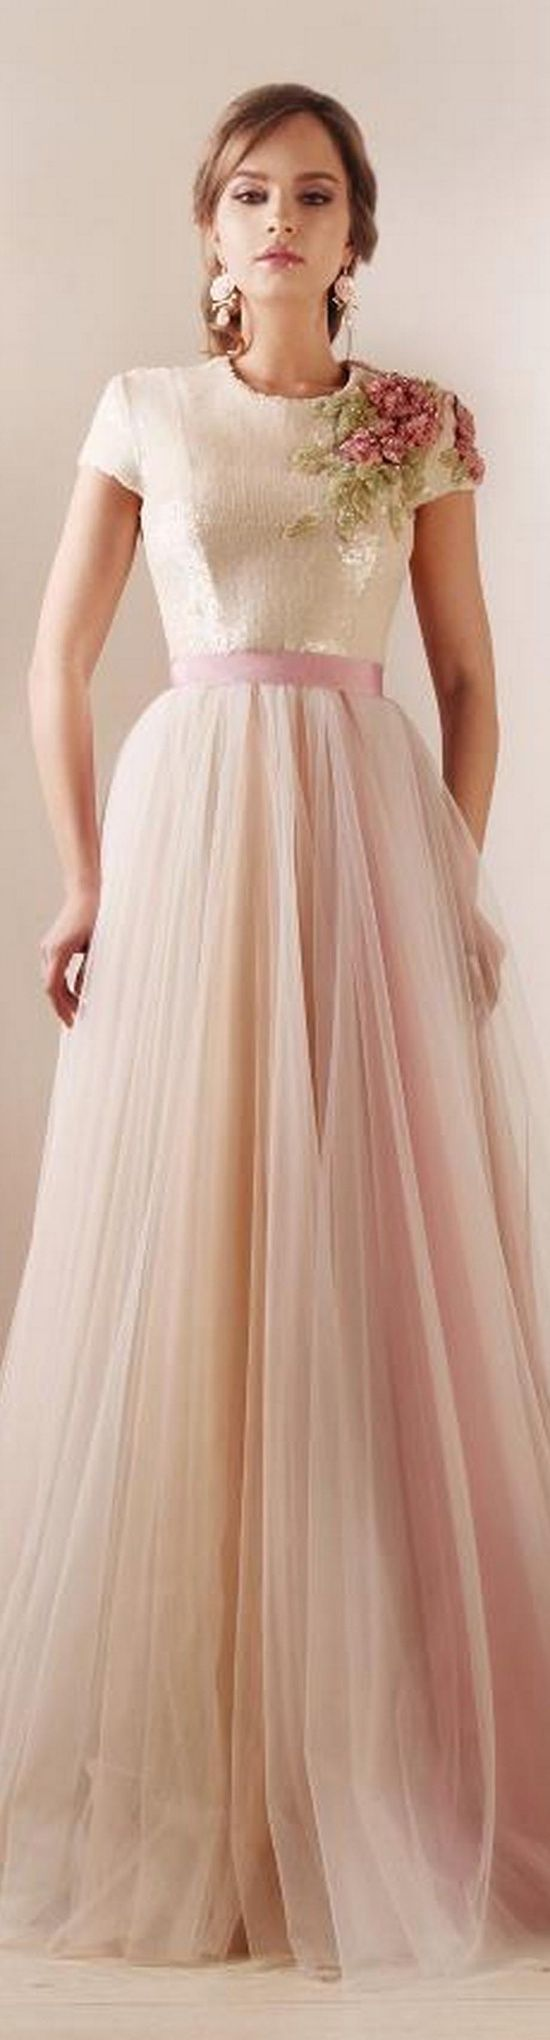 Renee miller wedding dresses   best Violet Harding Style  images on Pinterest  Casual wear